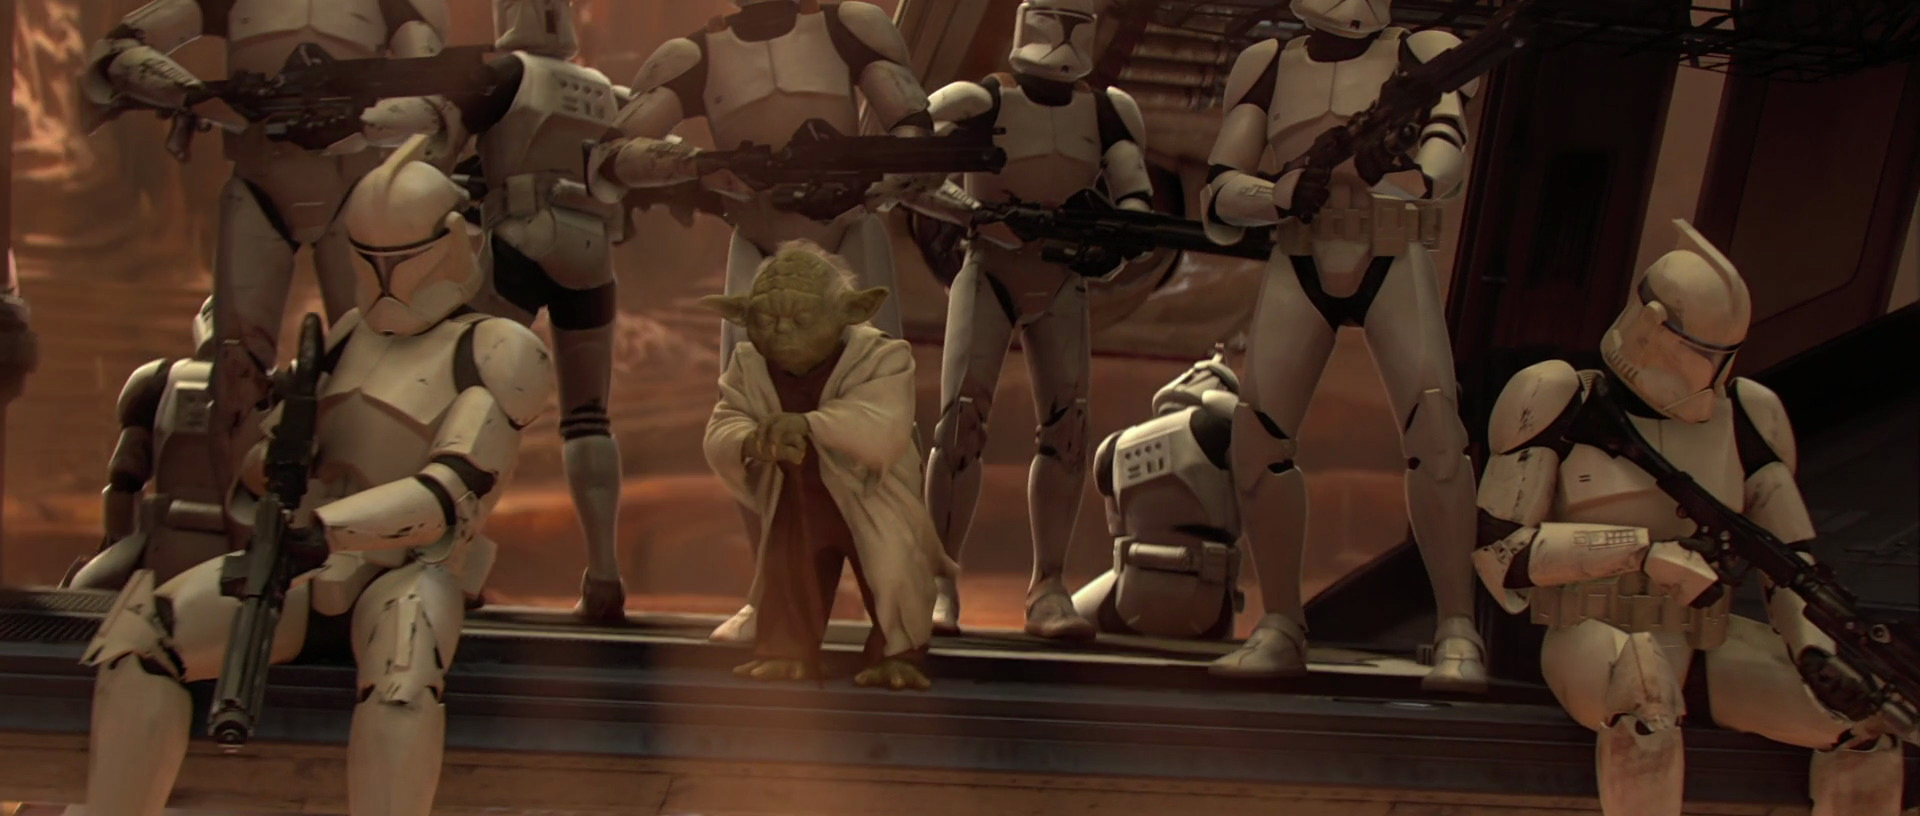 star wars attack of the clones review retrospective prequel trilogy yoda clone troopers george lucas